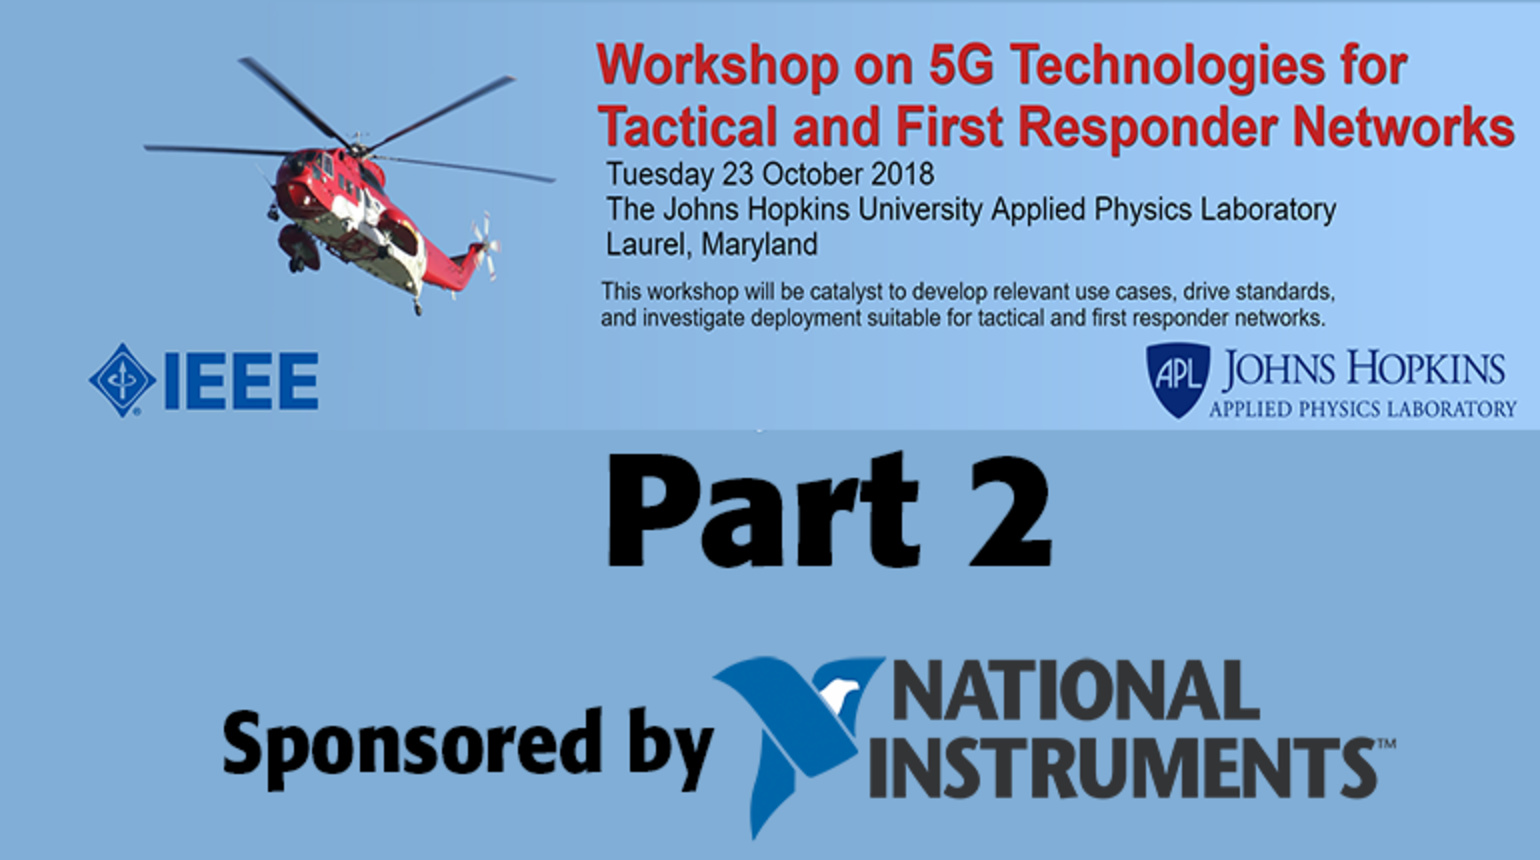 Part 2 of 3: Workshop on 5G Technologies for Tactical and First Responder Networks